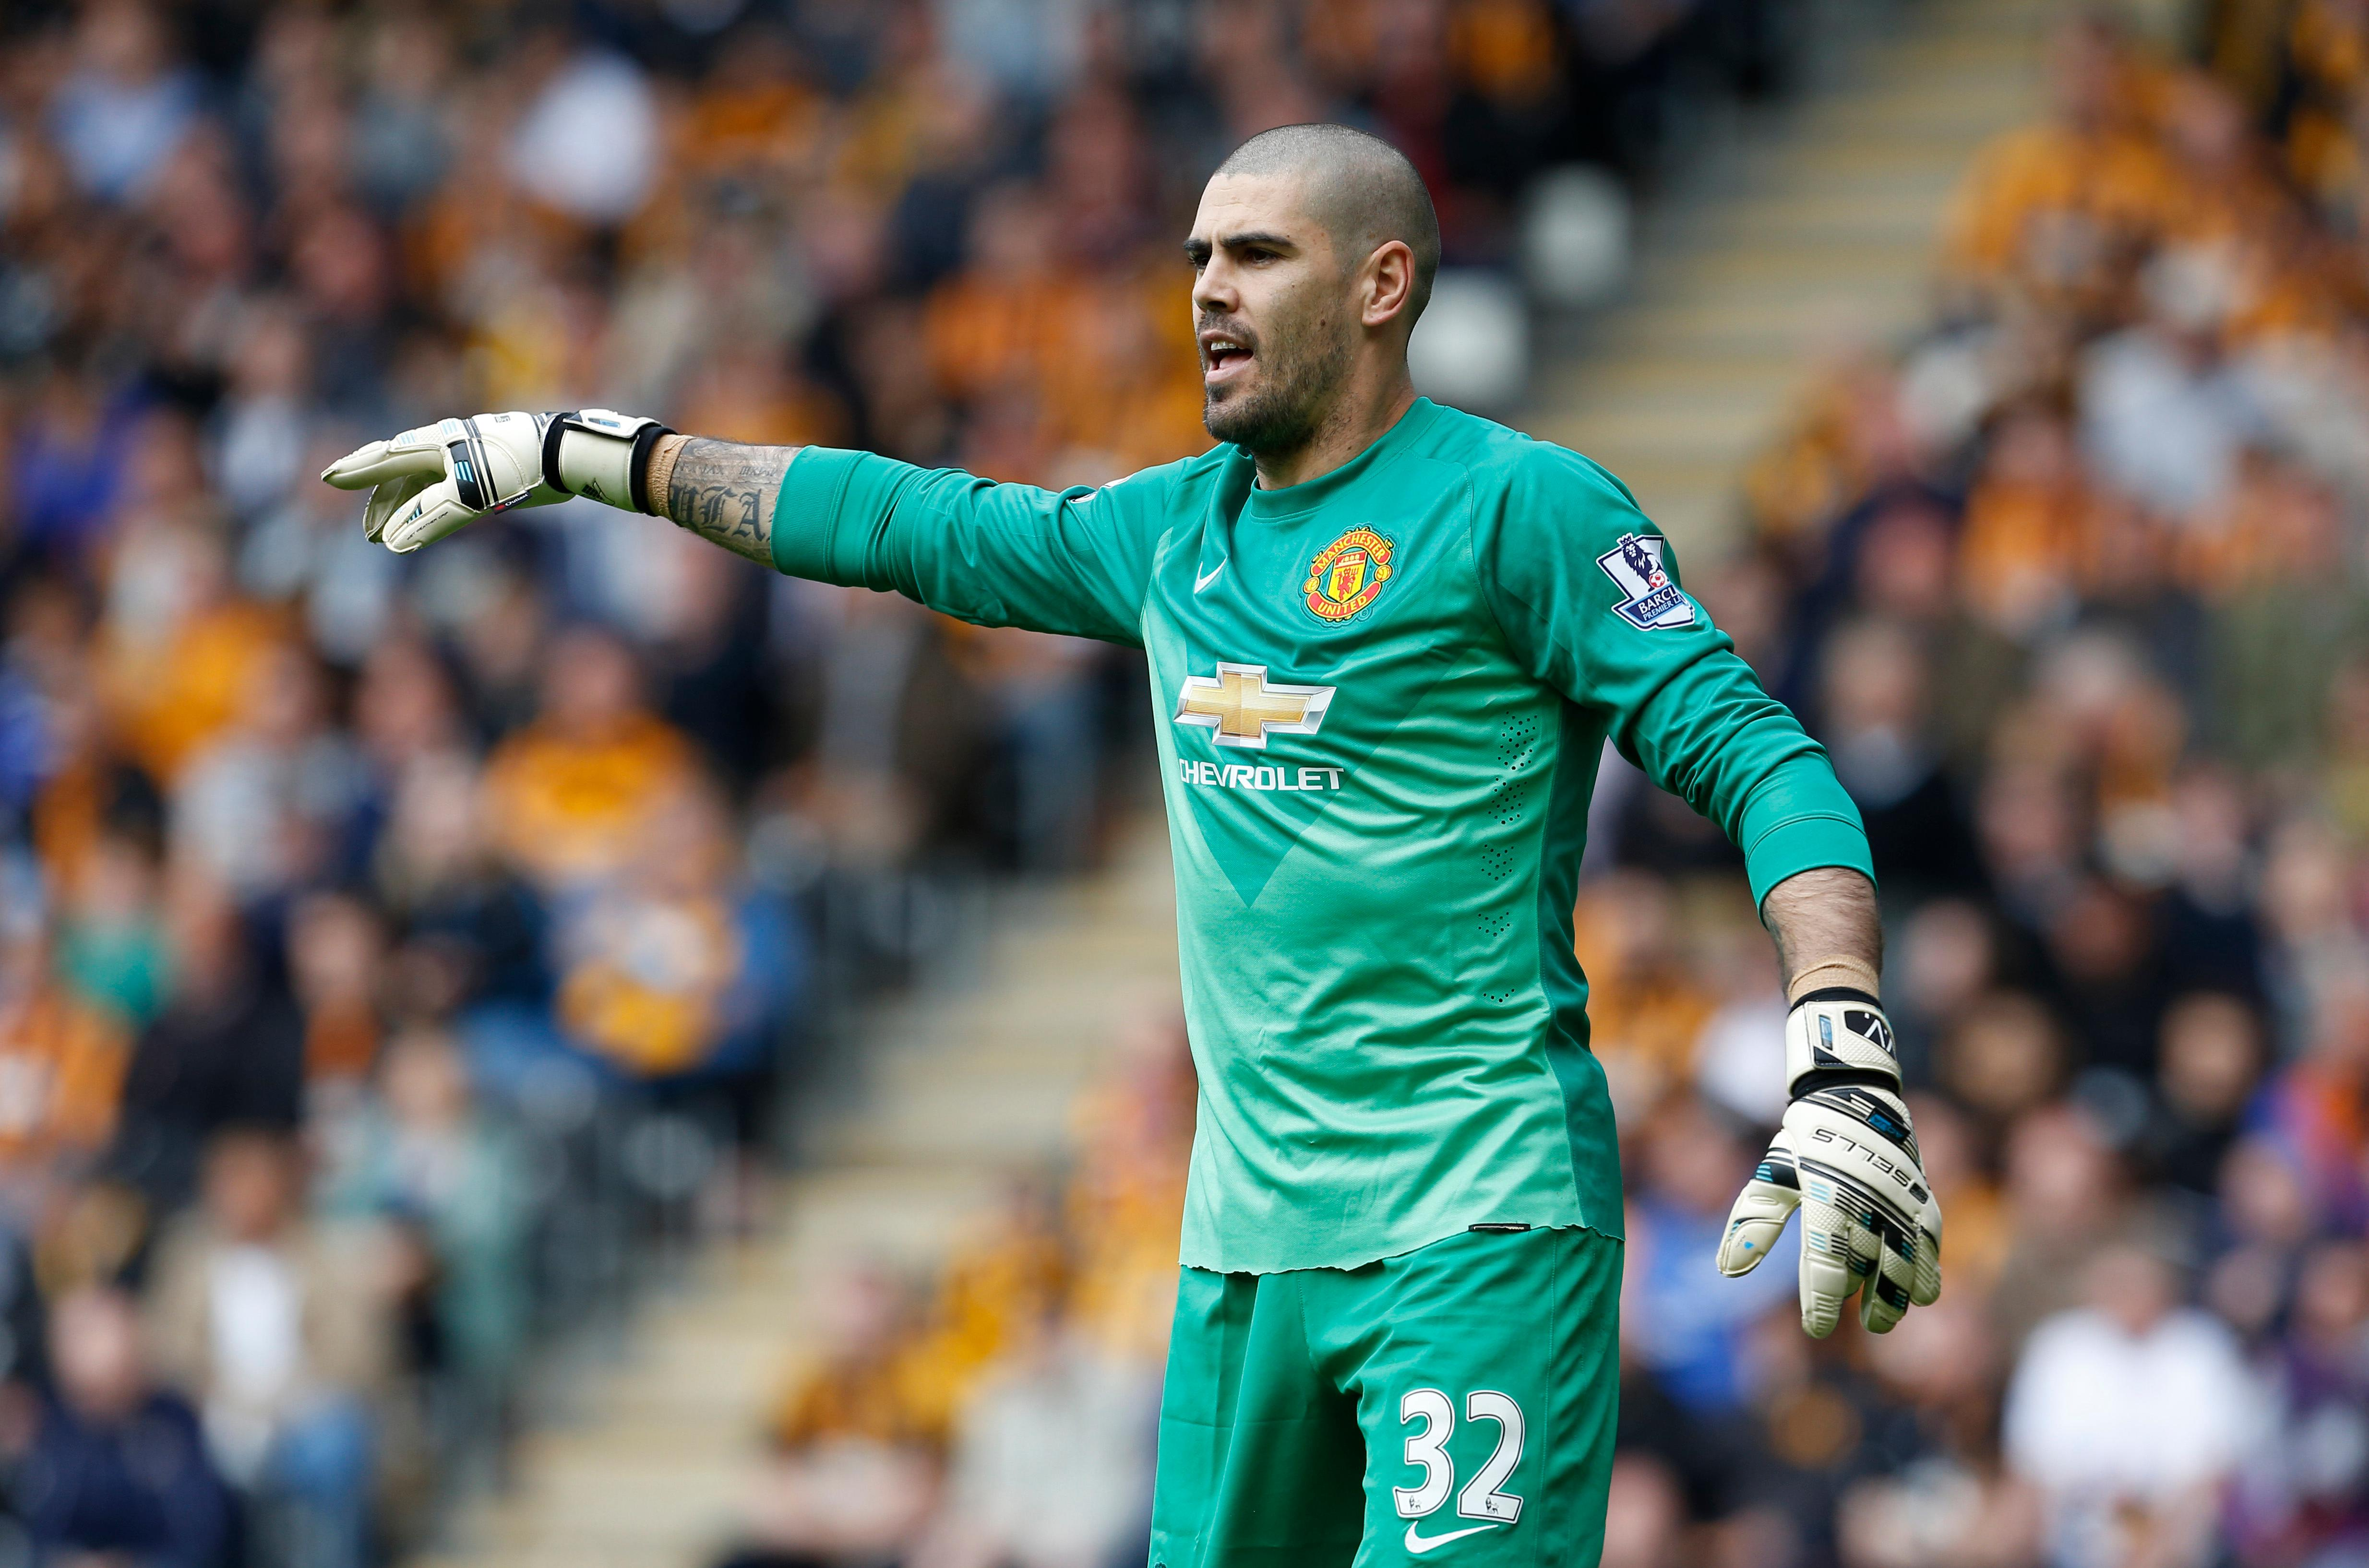 Middlesbrough sign goalkeeper Valdes